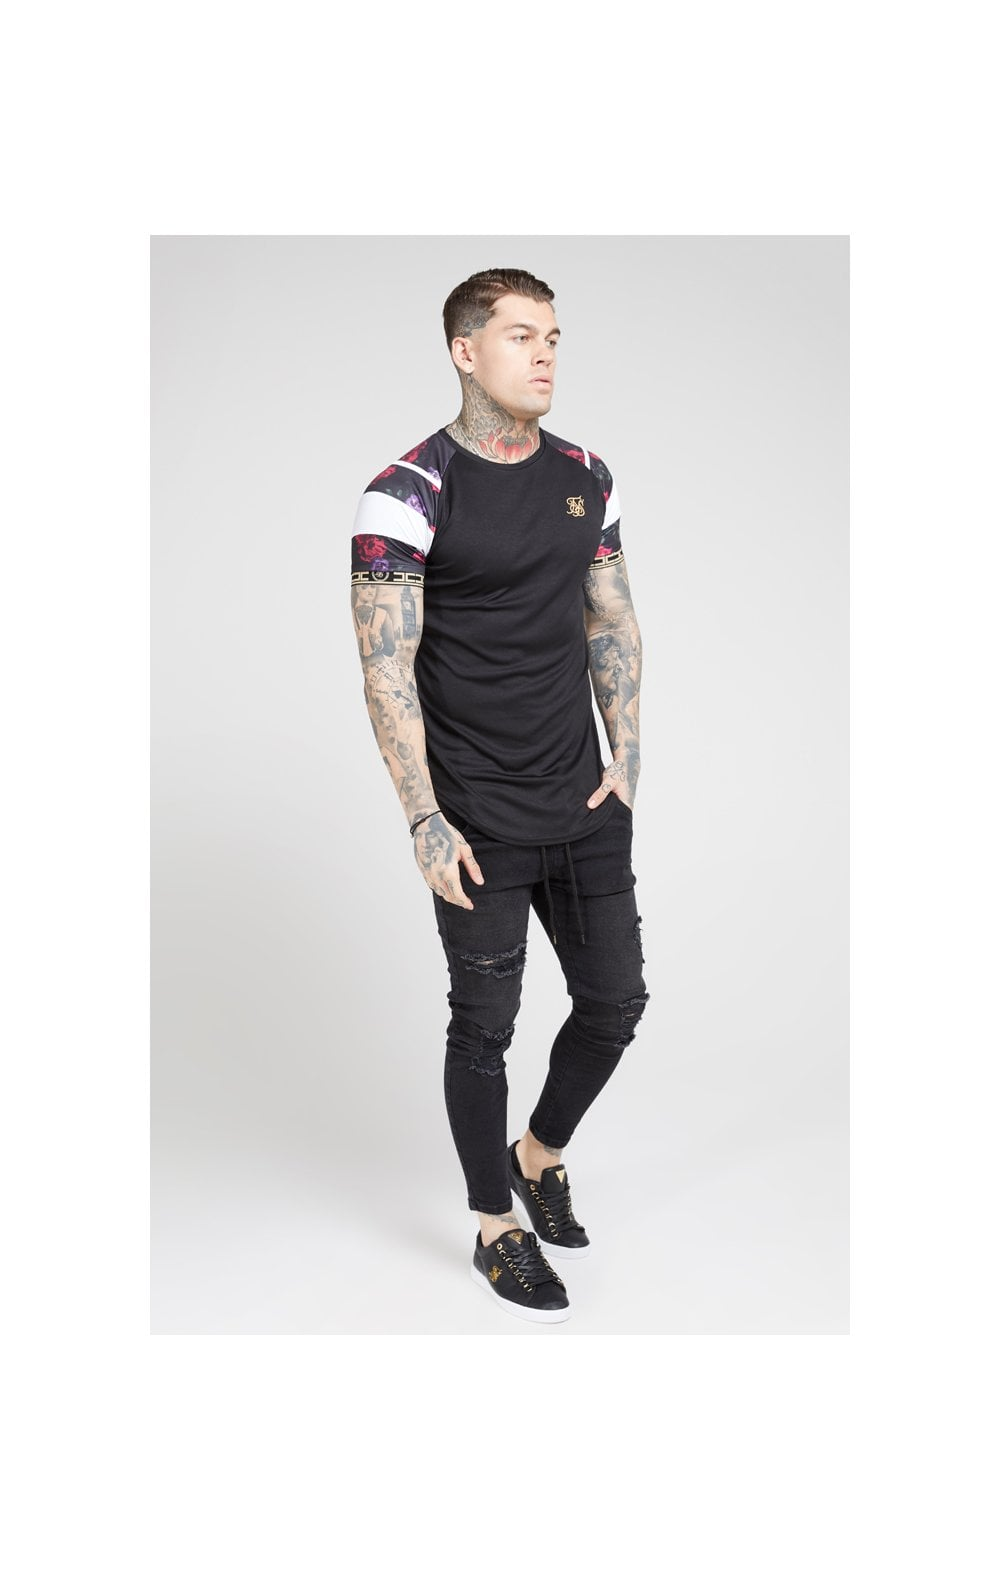 SikSilk S/S Raglan Sprint Tape Tee - Black & Oil Paint (3)